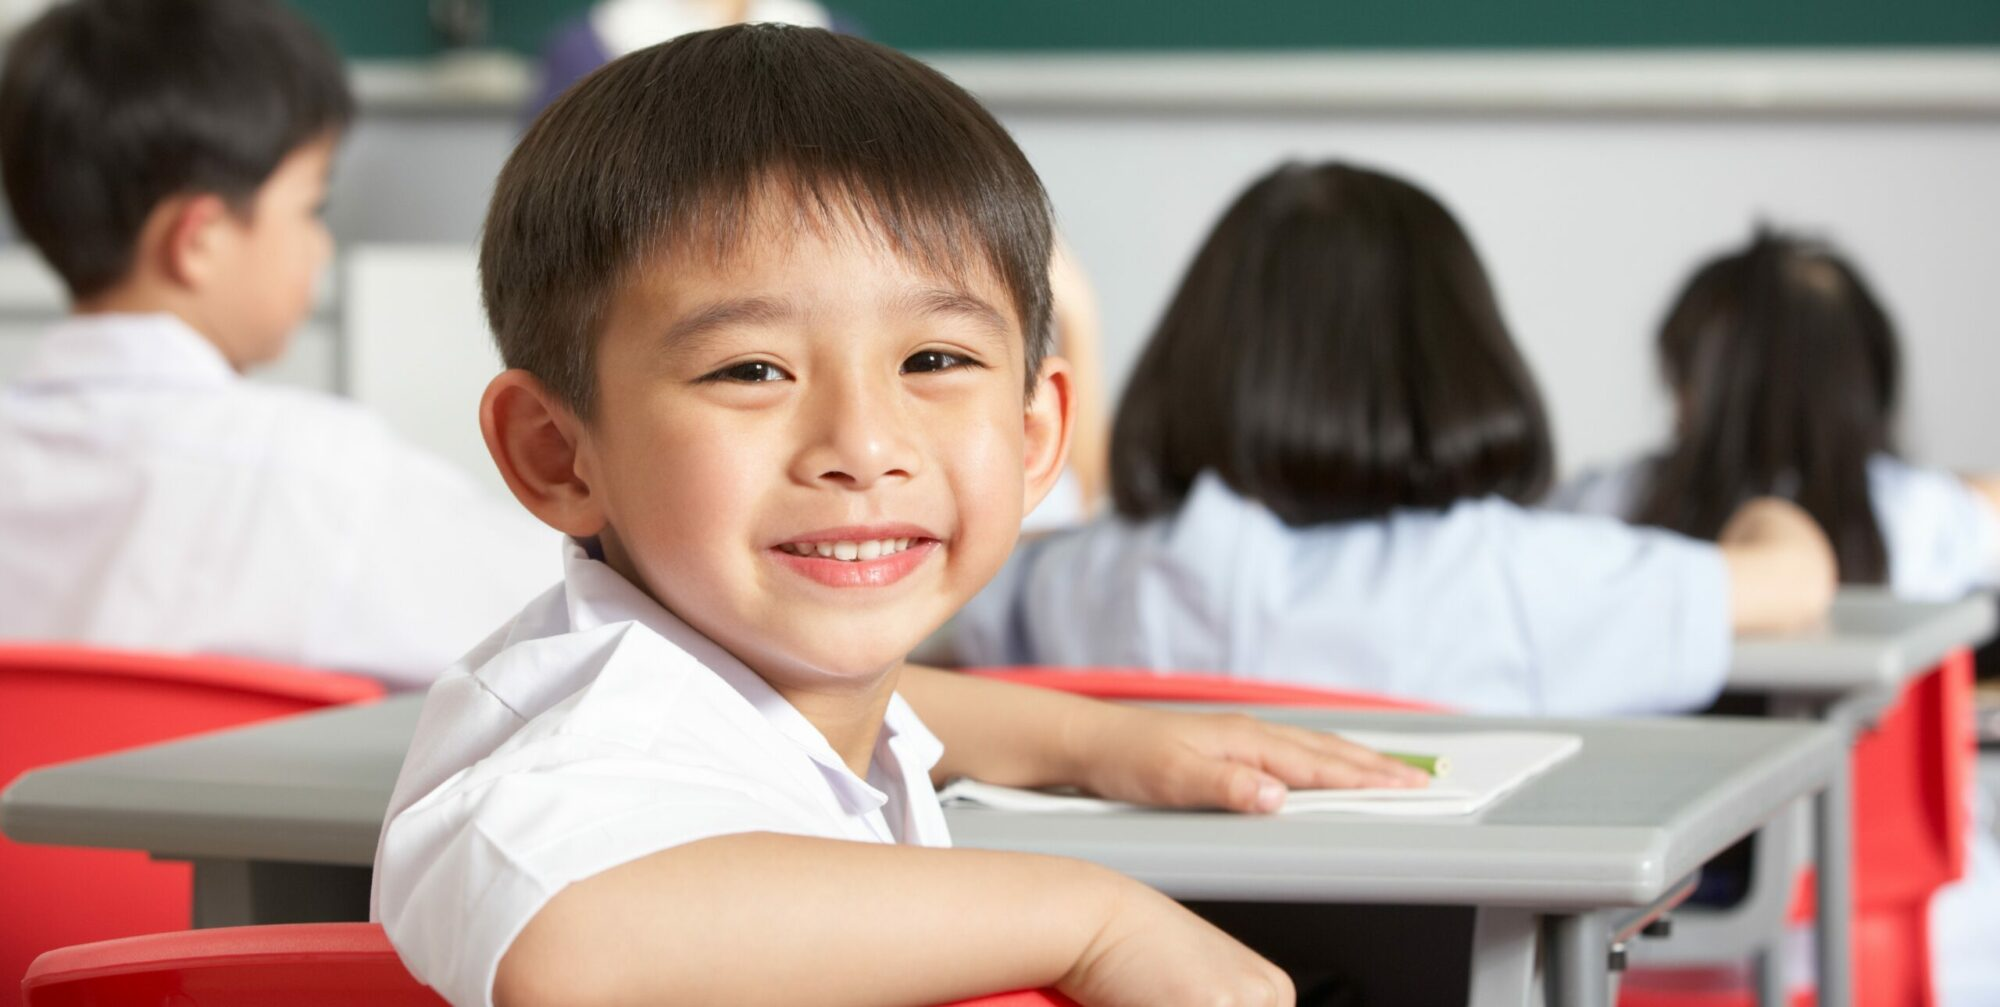 Young smiling child in classroom sitting at a desk with other students.